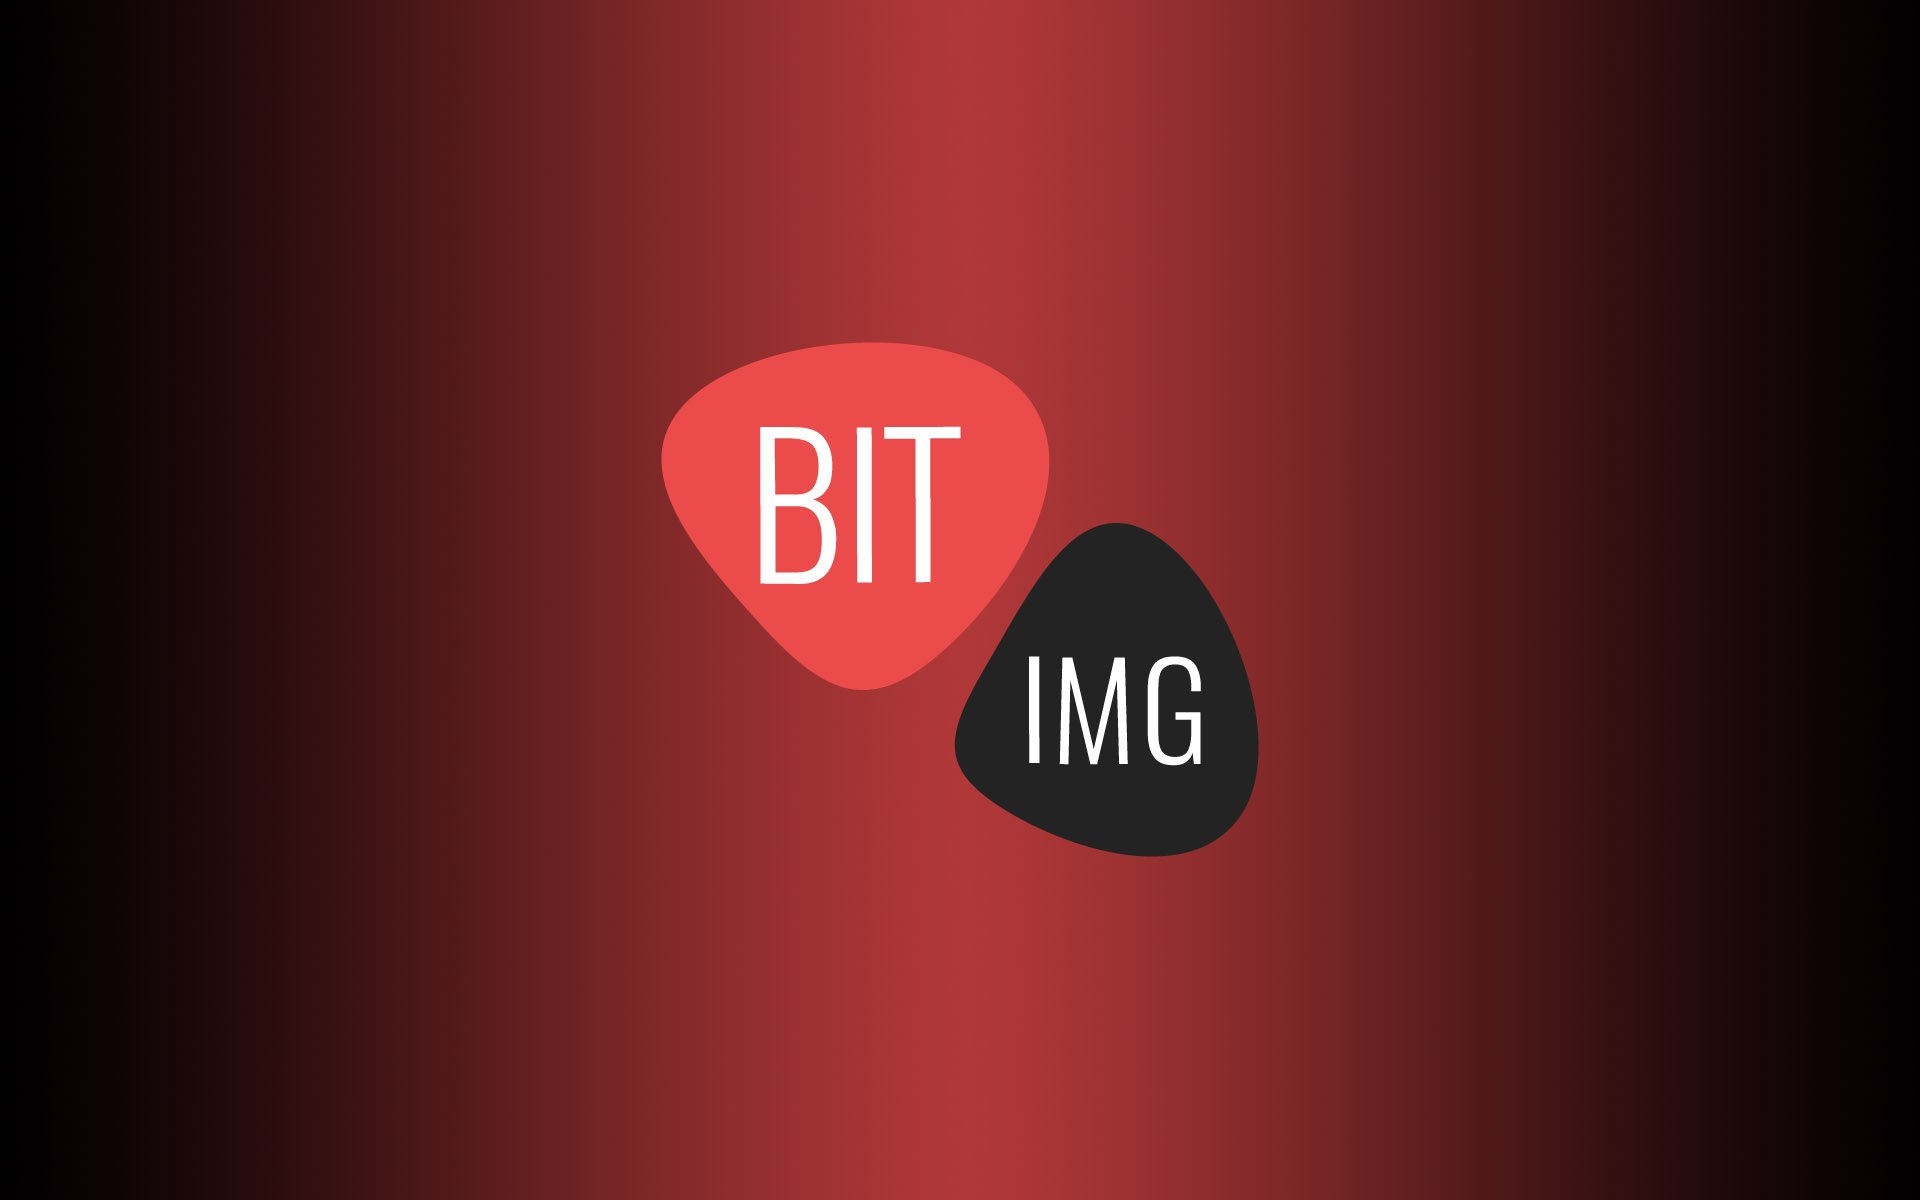 BitImage: Innovating $200B Industry of Digital Content